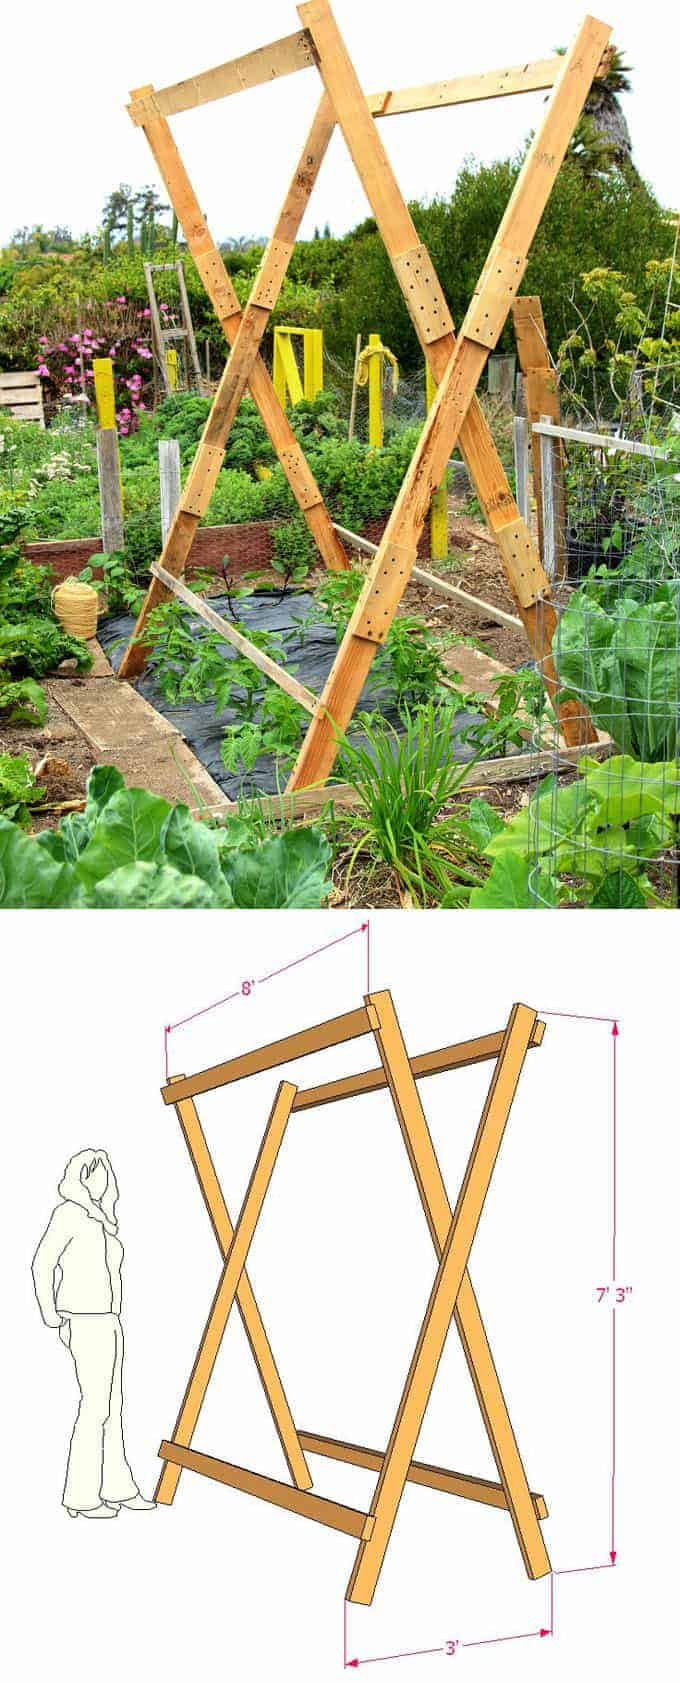 High, x frame, vertical tomato stand to grow many at once